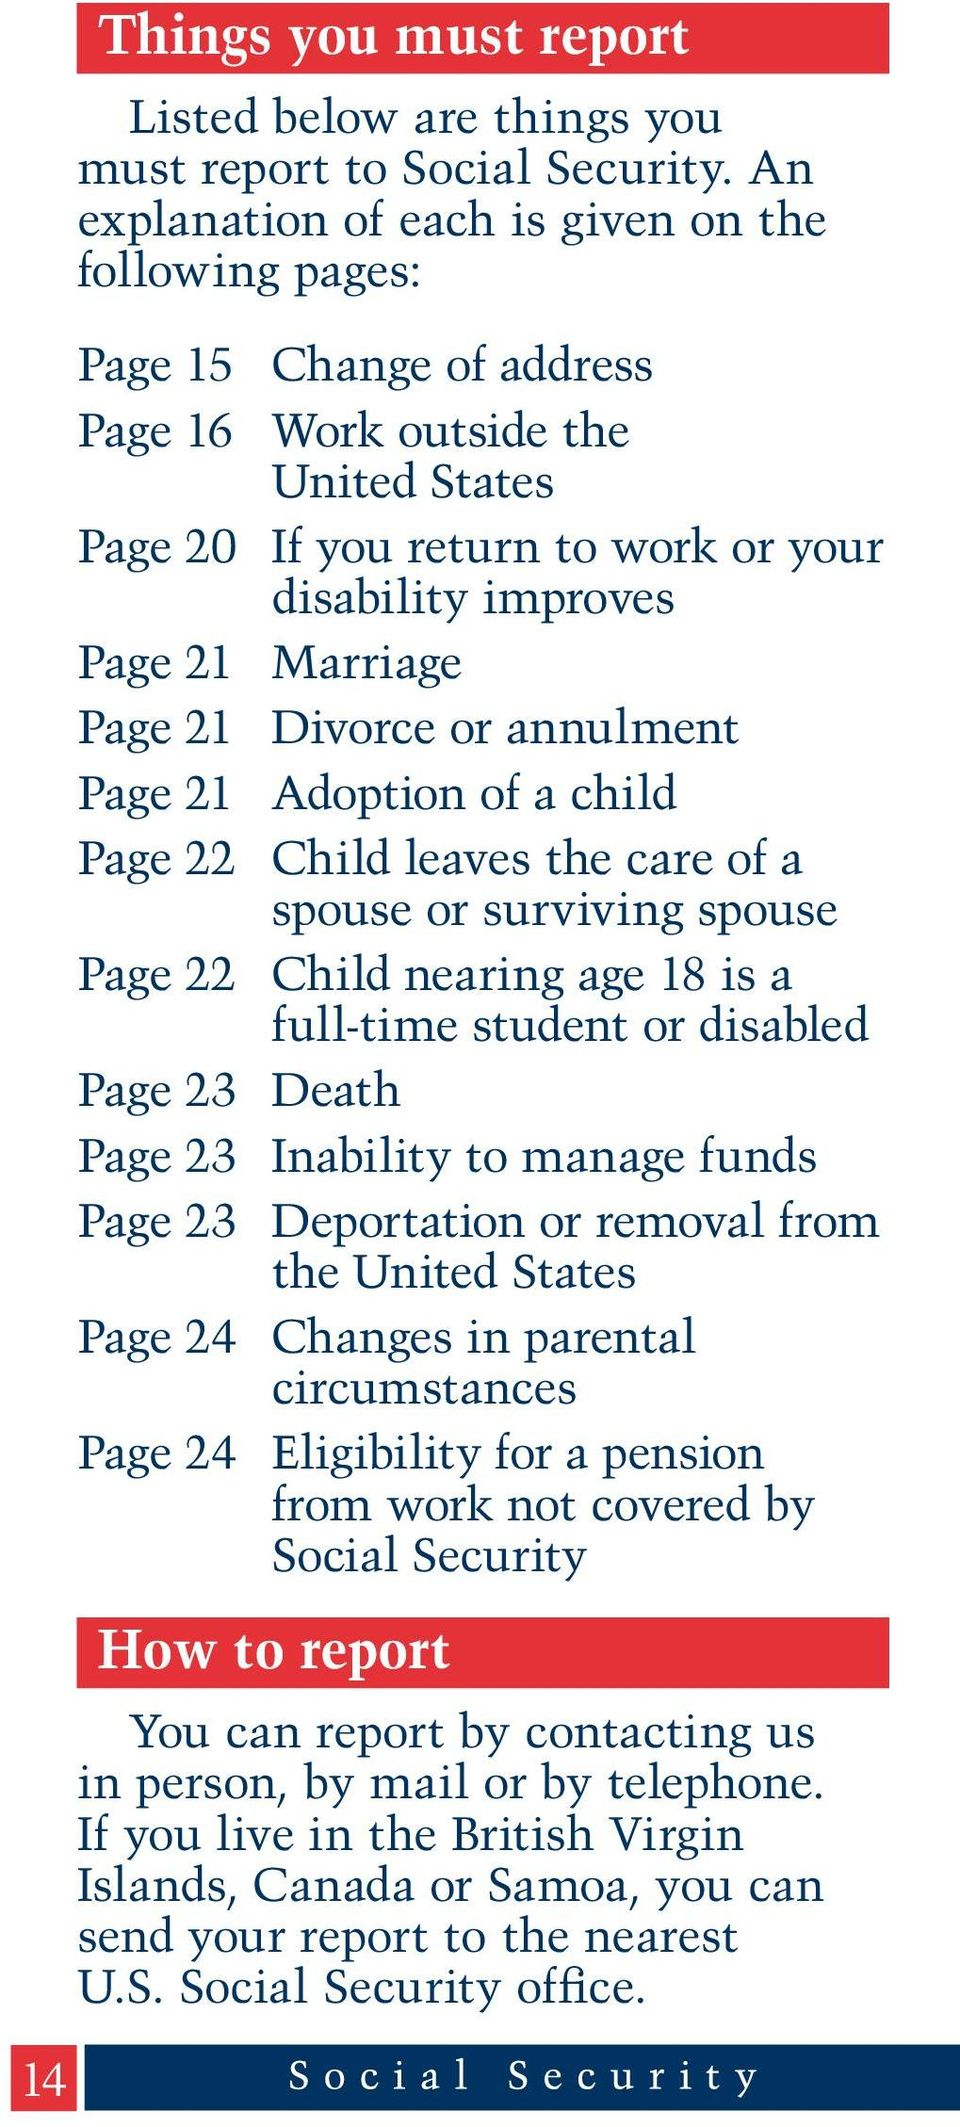 Page 21 Divorce or annulment Page 21 Adoption of a child Page 22 Child leaves the care of a spouse or surviving spouse Page 22 Child nearing age 18 is a full-time student or disabled Page 23 Death